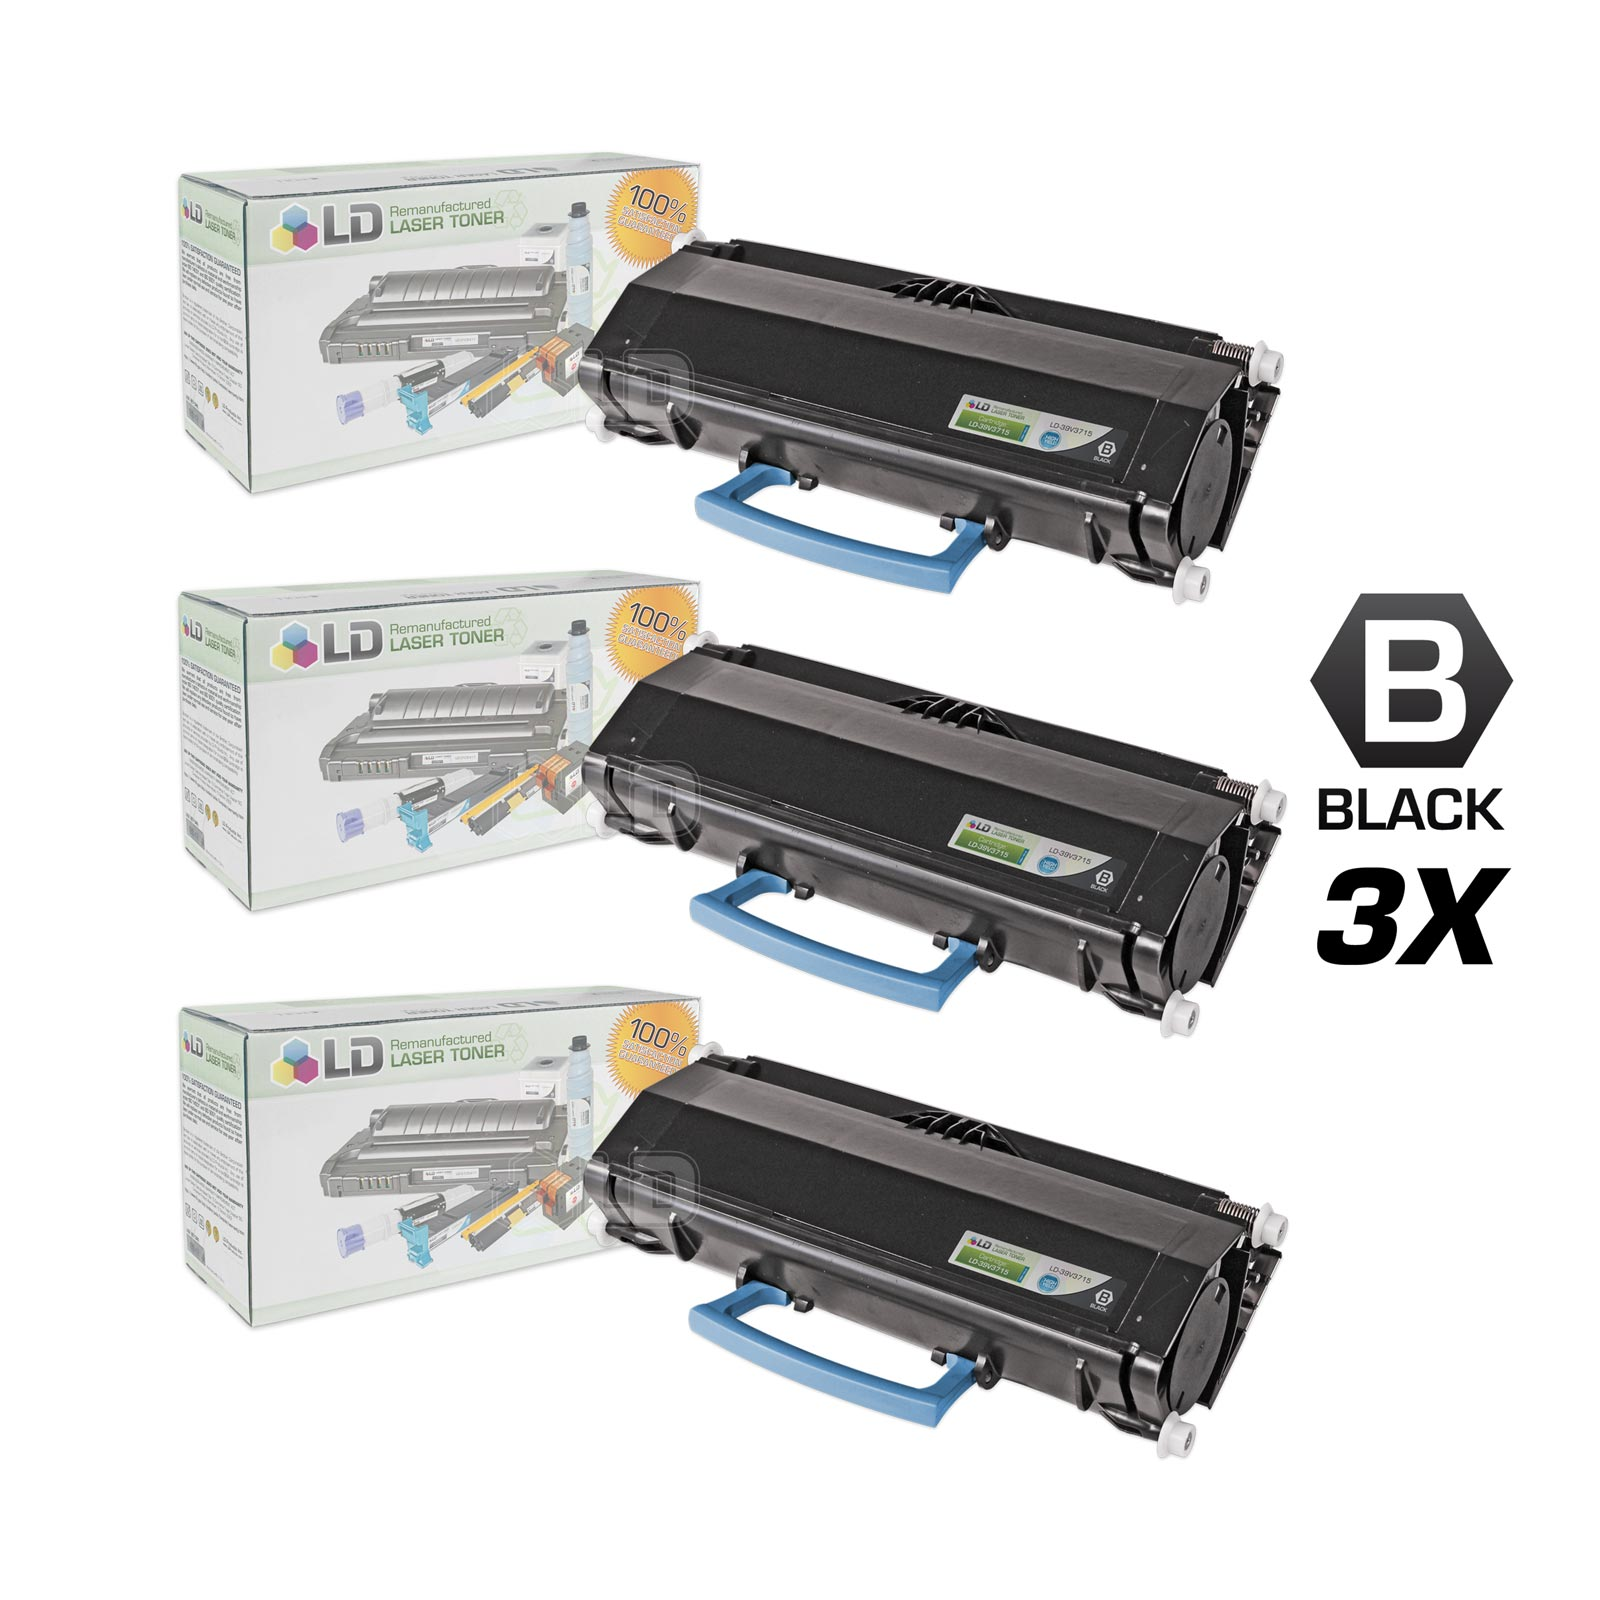 LD Remanufactured IBM 39V3715 High Yield Black Laser Toner Cartridges